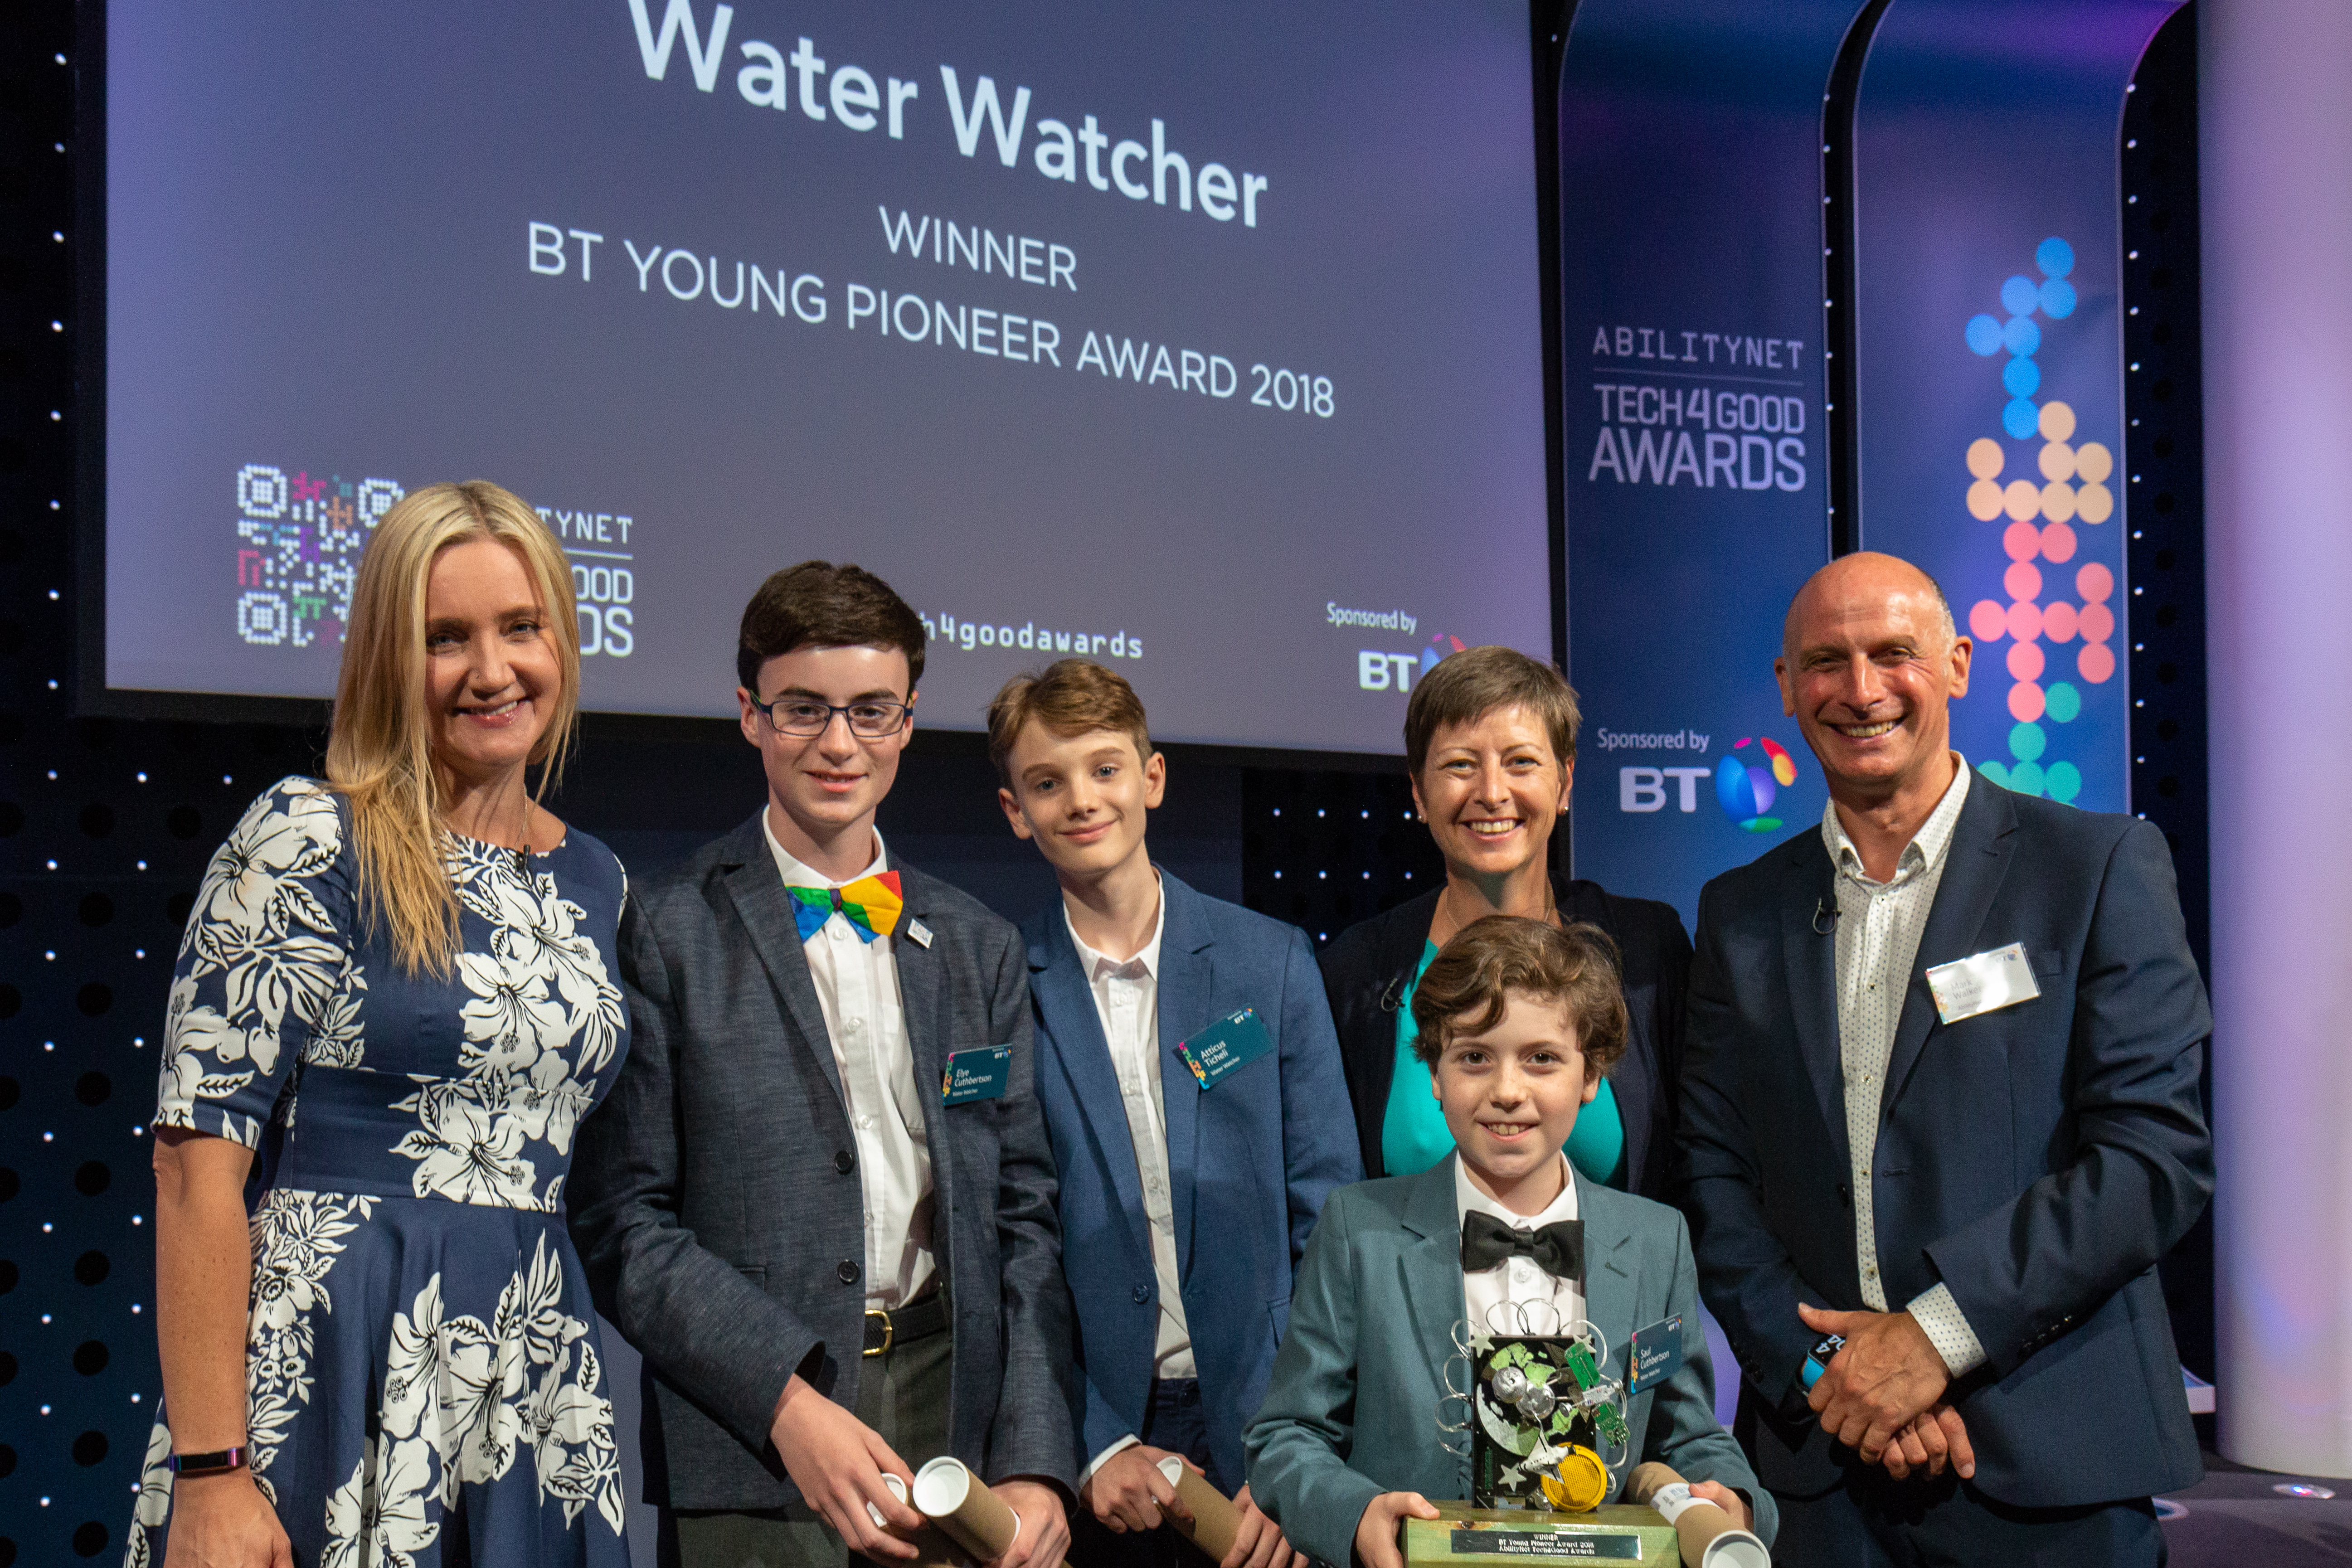 Kate Russell, Mark Walker and the 2018 BT Young Pioneer Award winners - Water Watcher